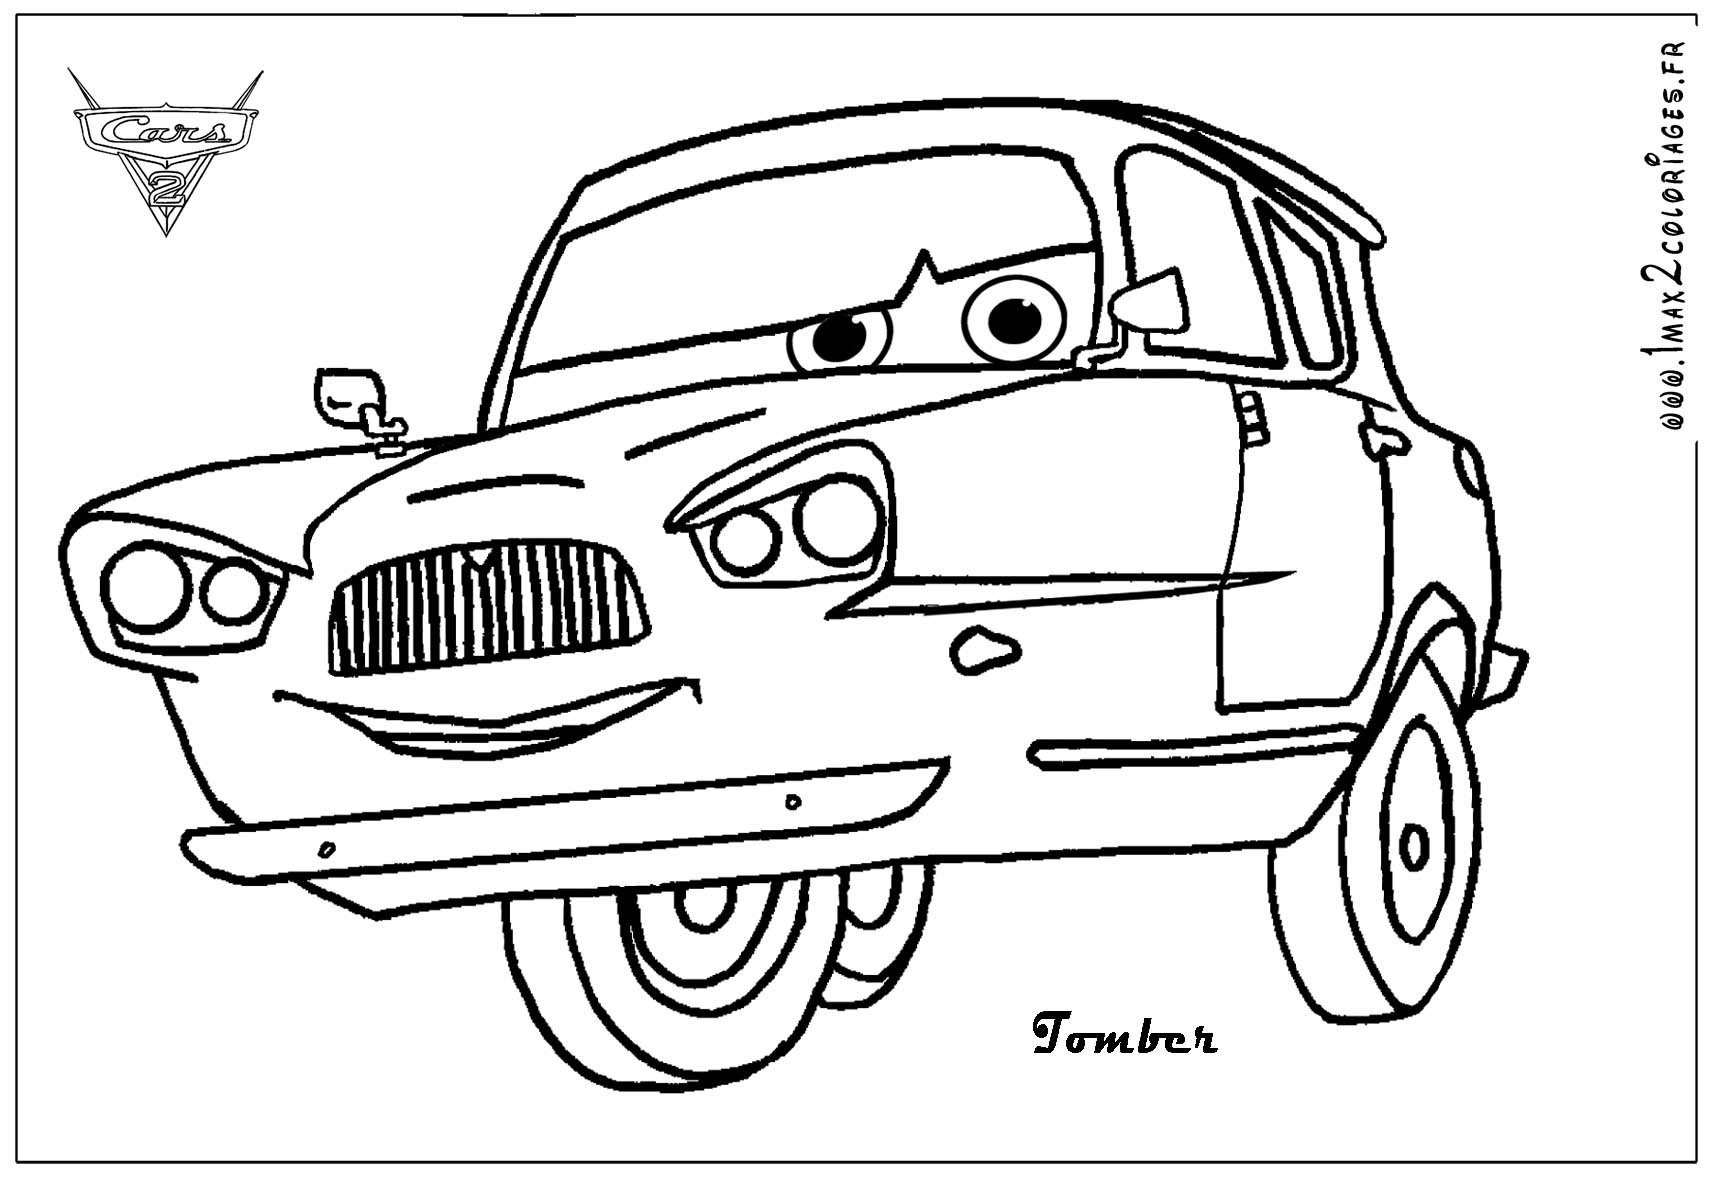 cars 2 coloring pages - cars and cars 2 coloring pages